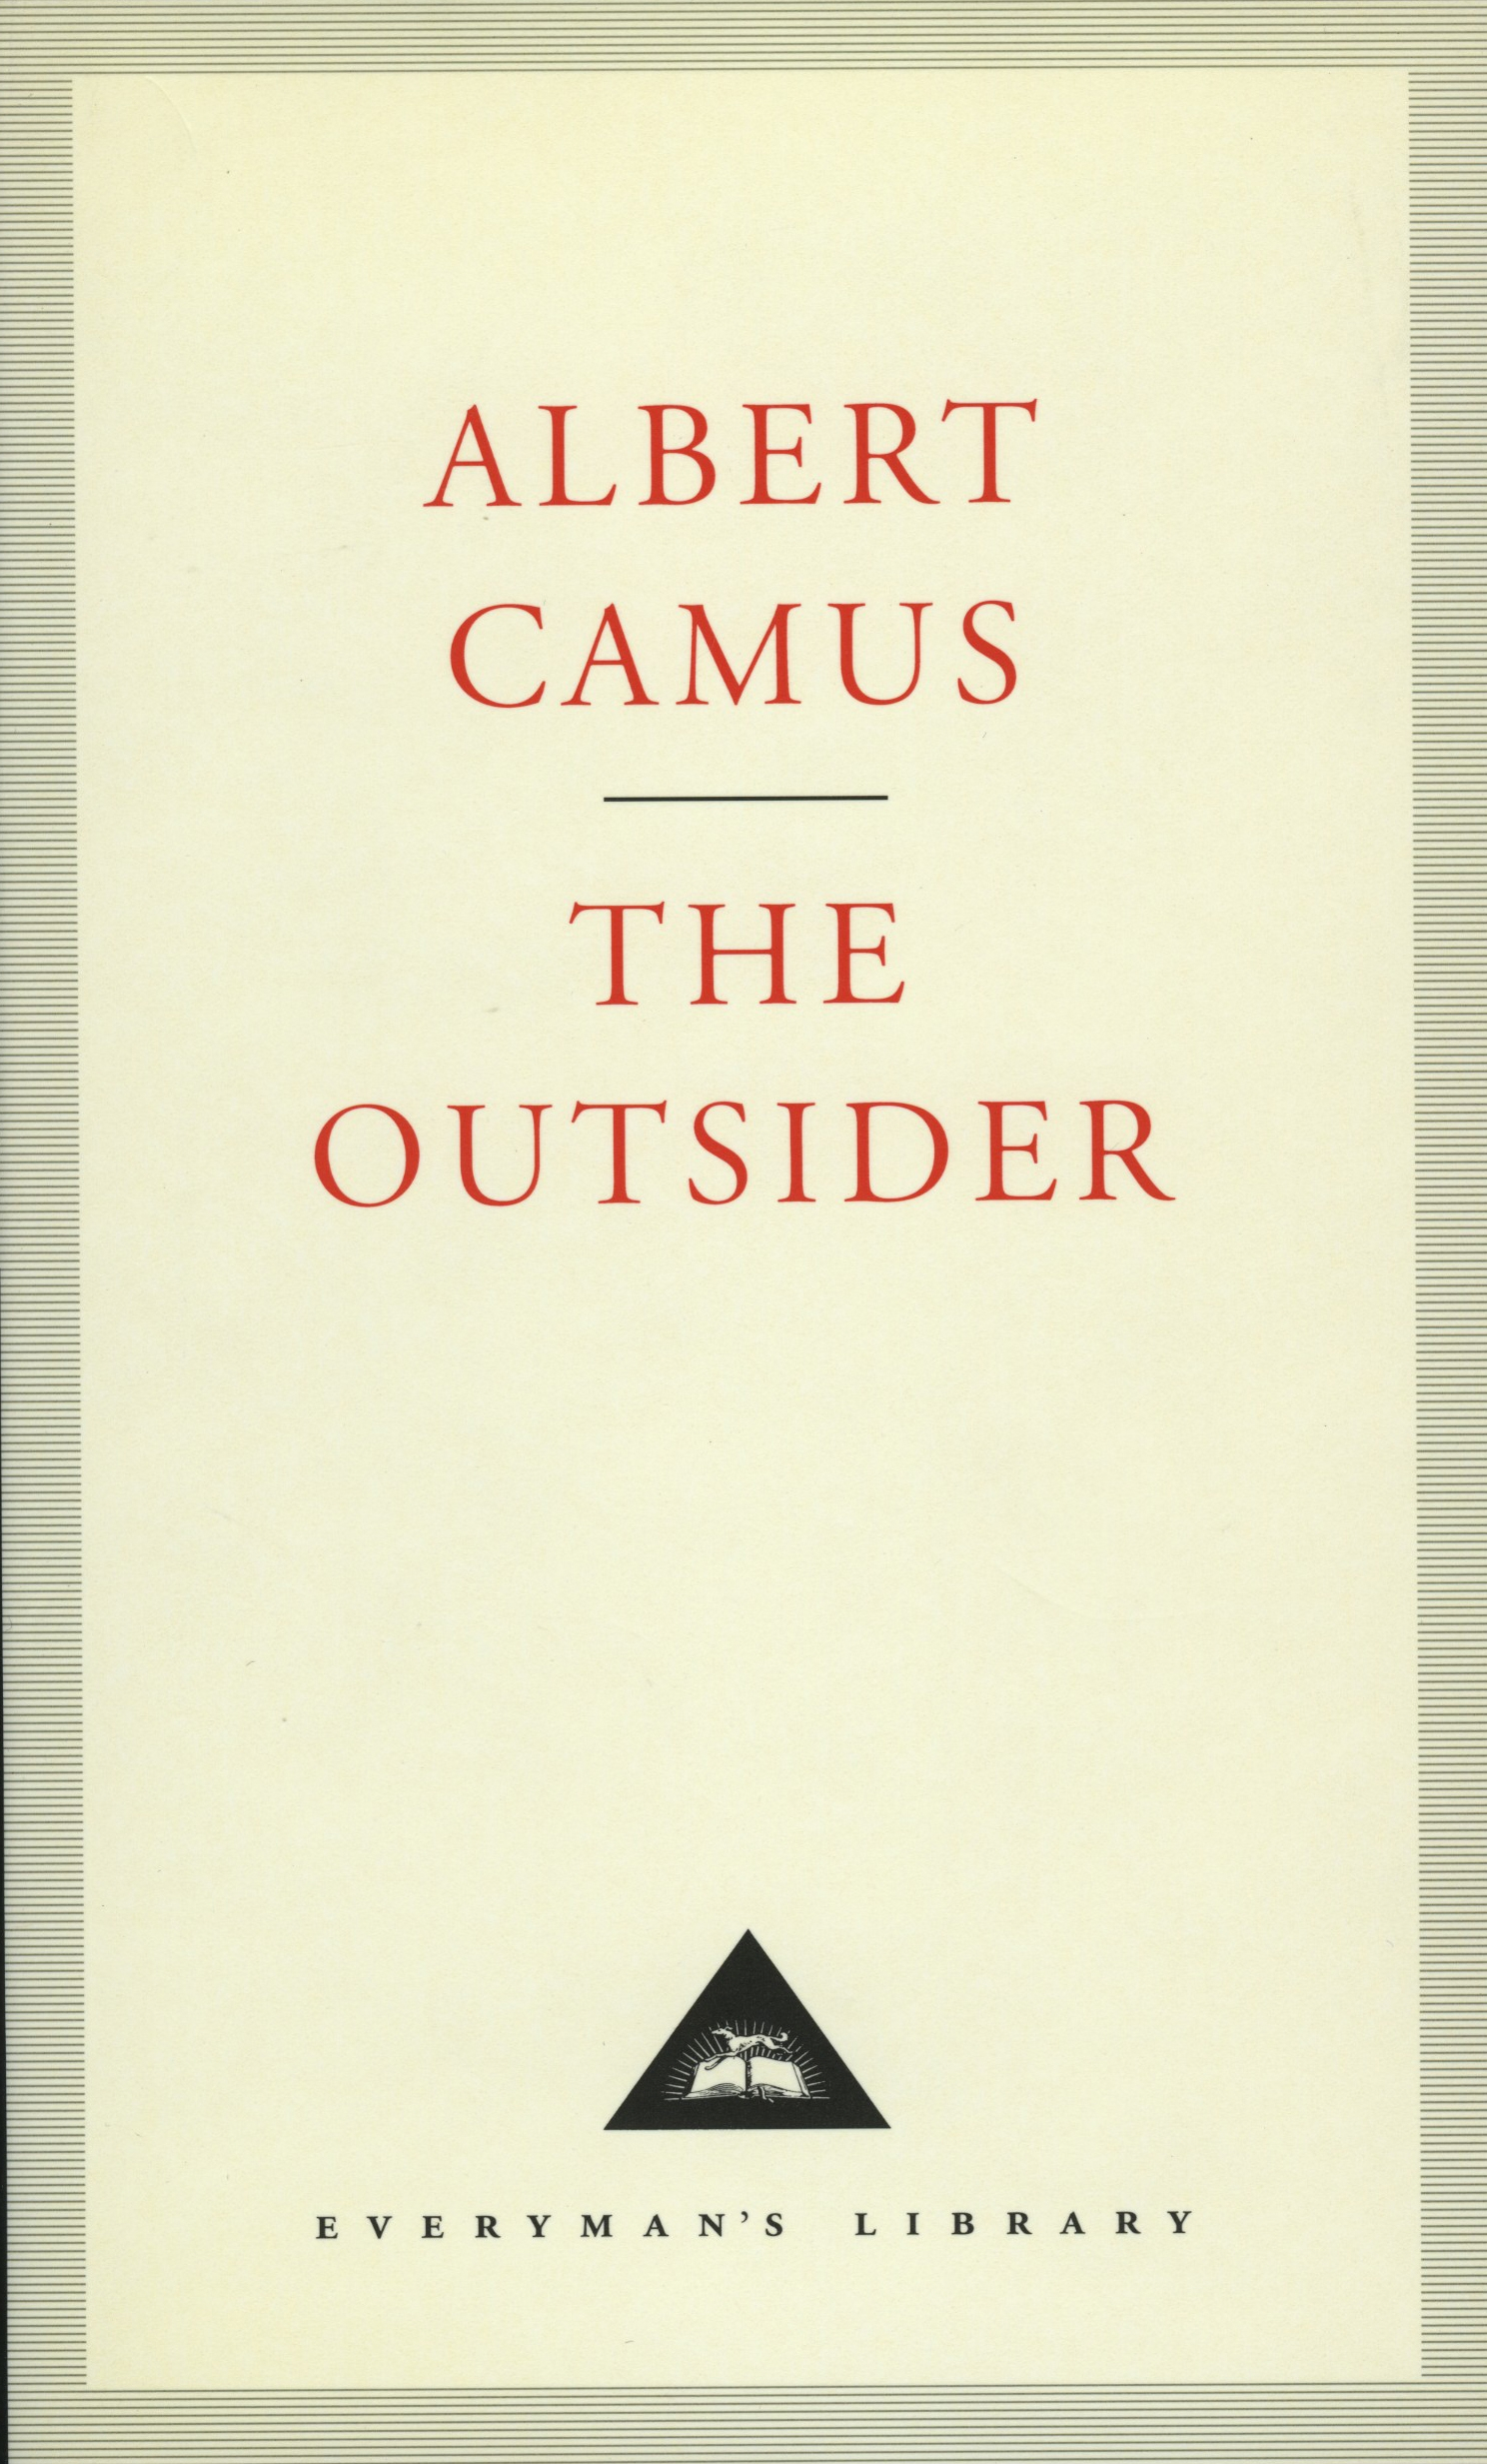 an analysis of the outsiders by camus Plot summary an analysis of major the outsiders [pic][pic][pic] study of an extract from pages 14 to 15 from the outsider by albert camus.